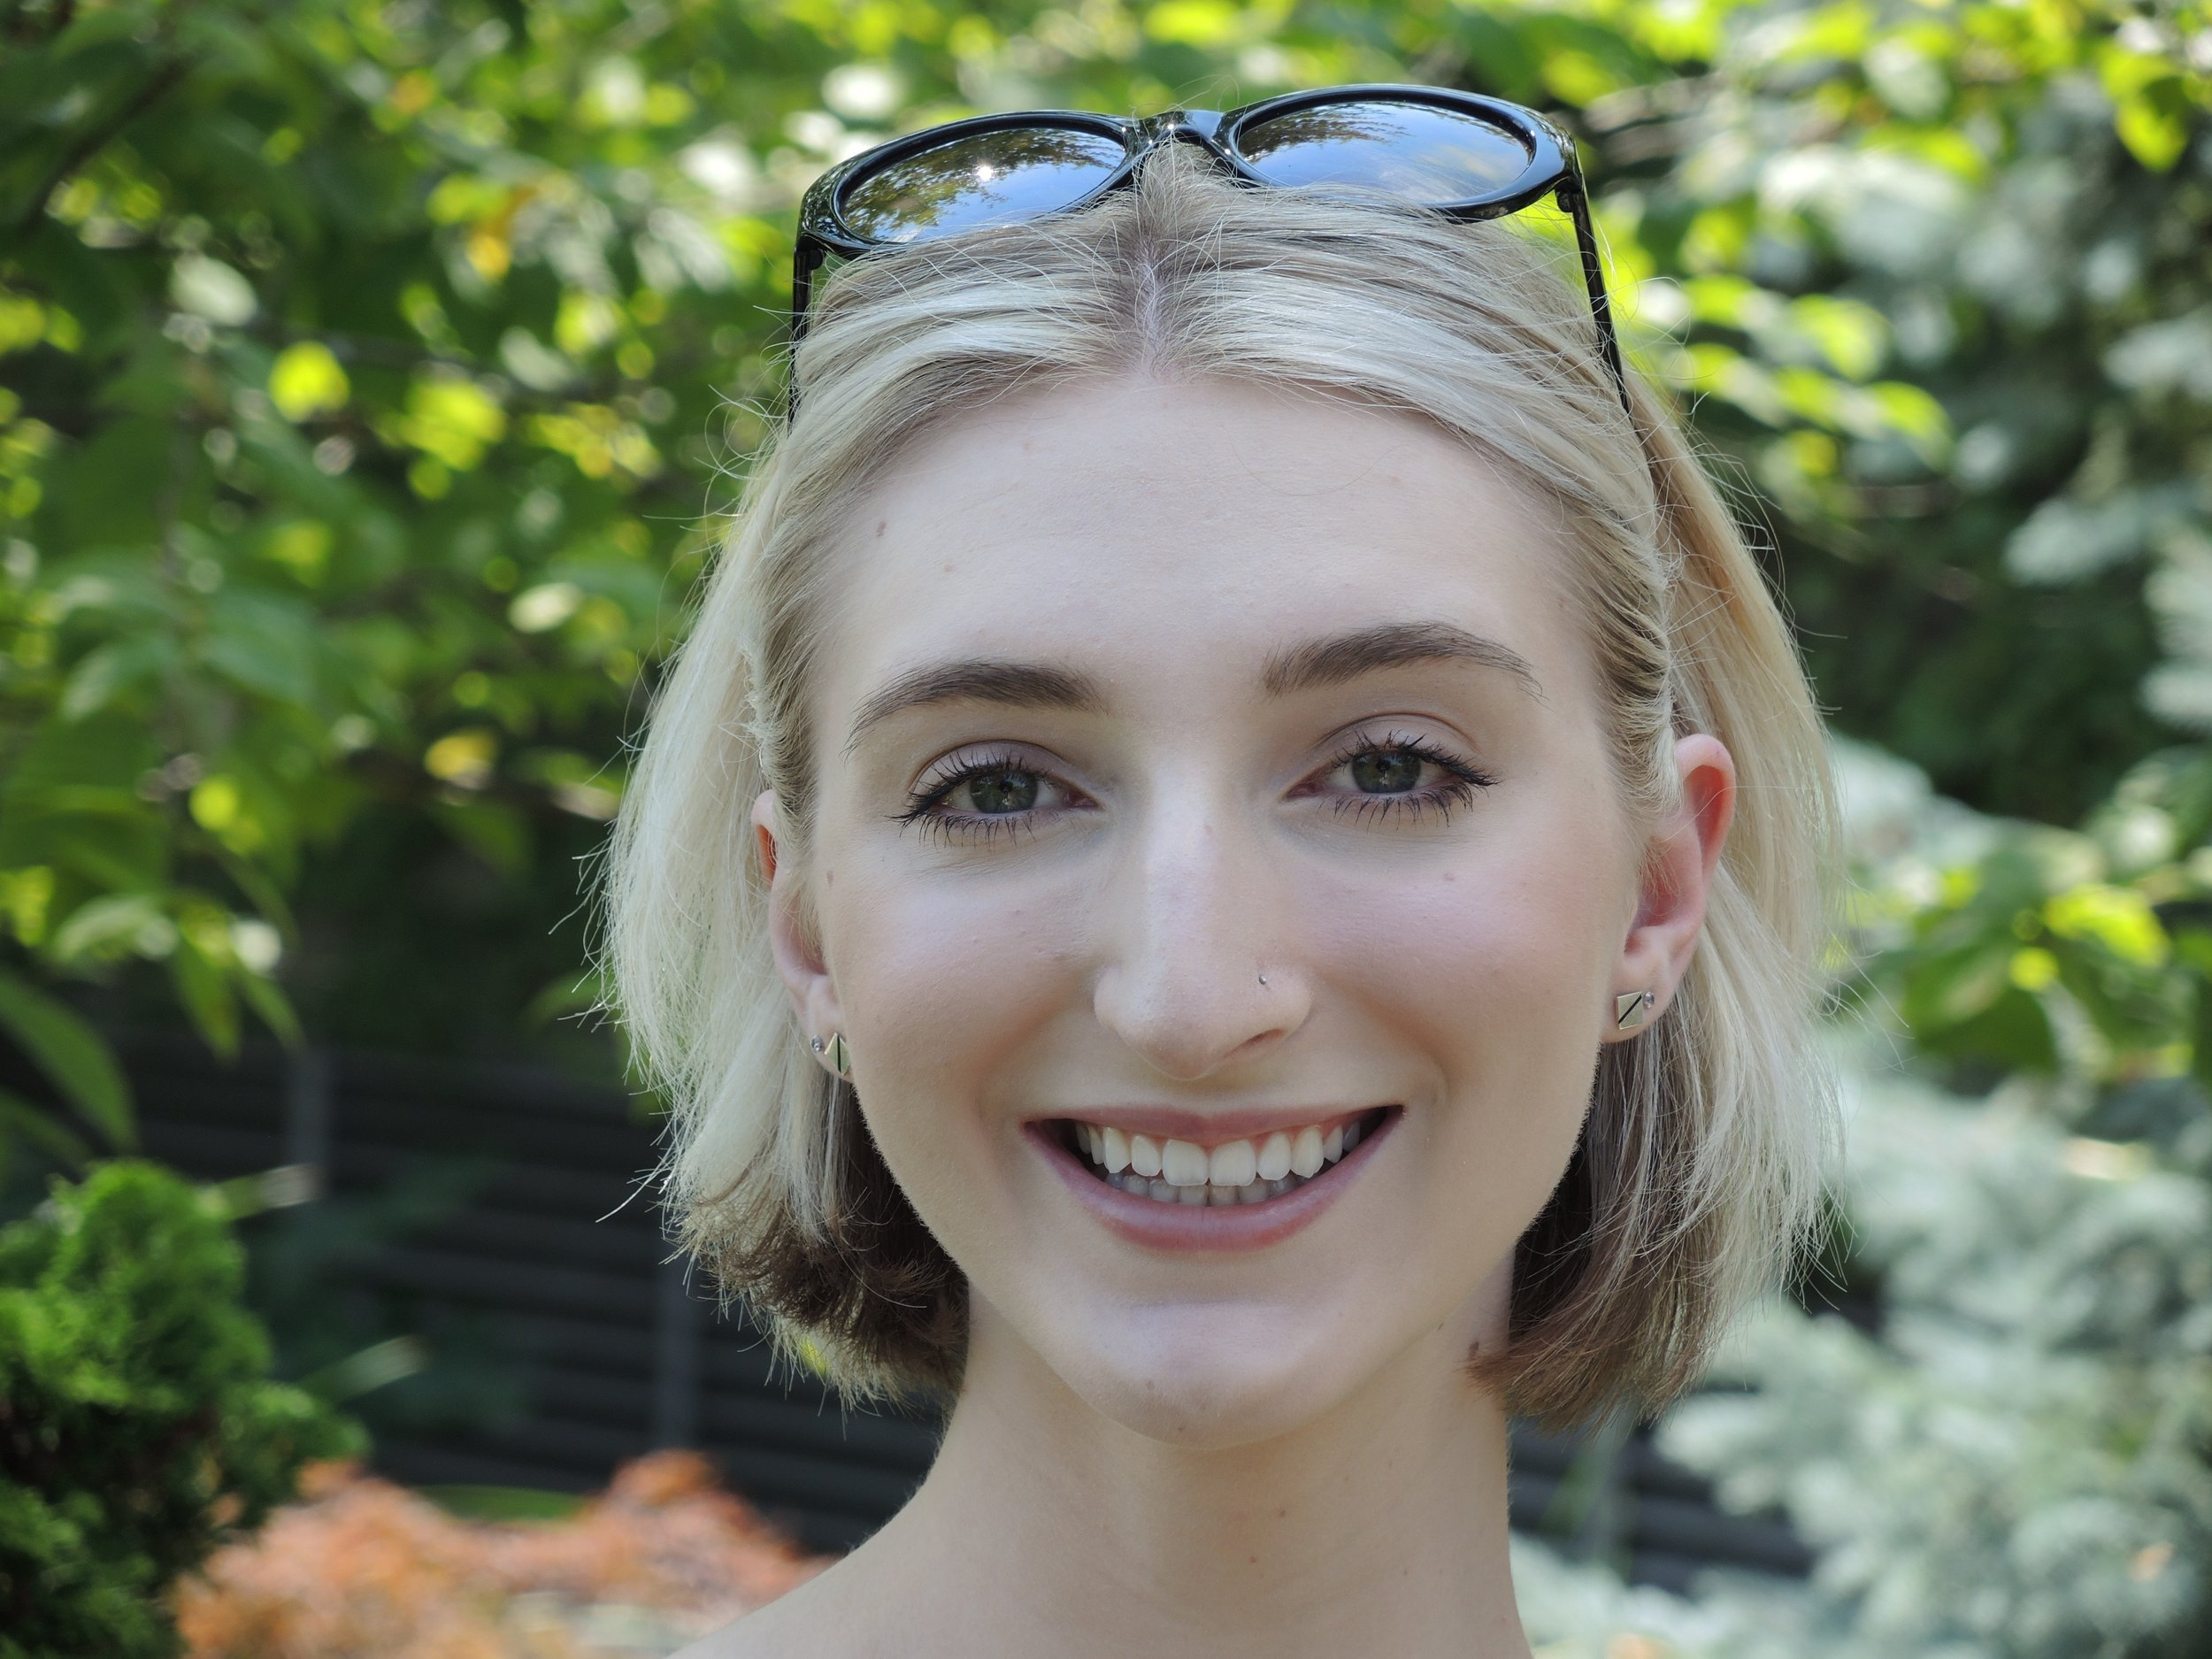 Olivia Krygowski is a third year biology major graduating this May, 2020. She is an undergraduate researcher working with Yasaman Heidarian. They are studying the role of L-2HG in a  Drosophila  model of renal cancer.